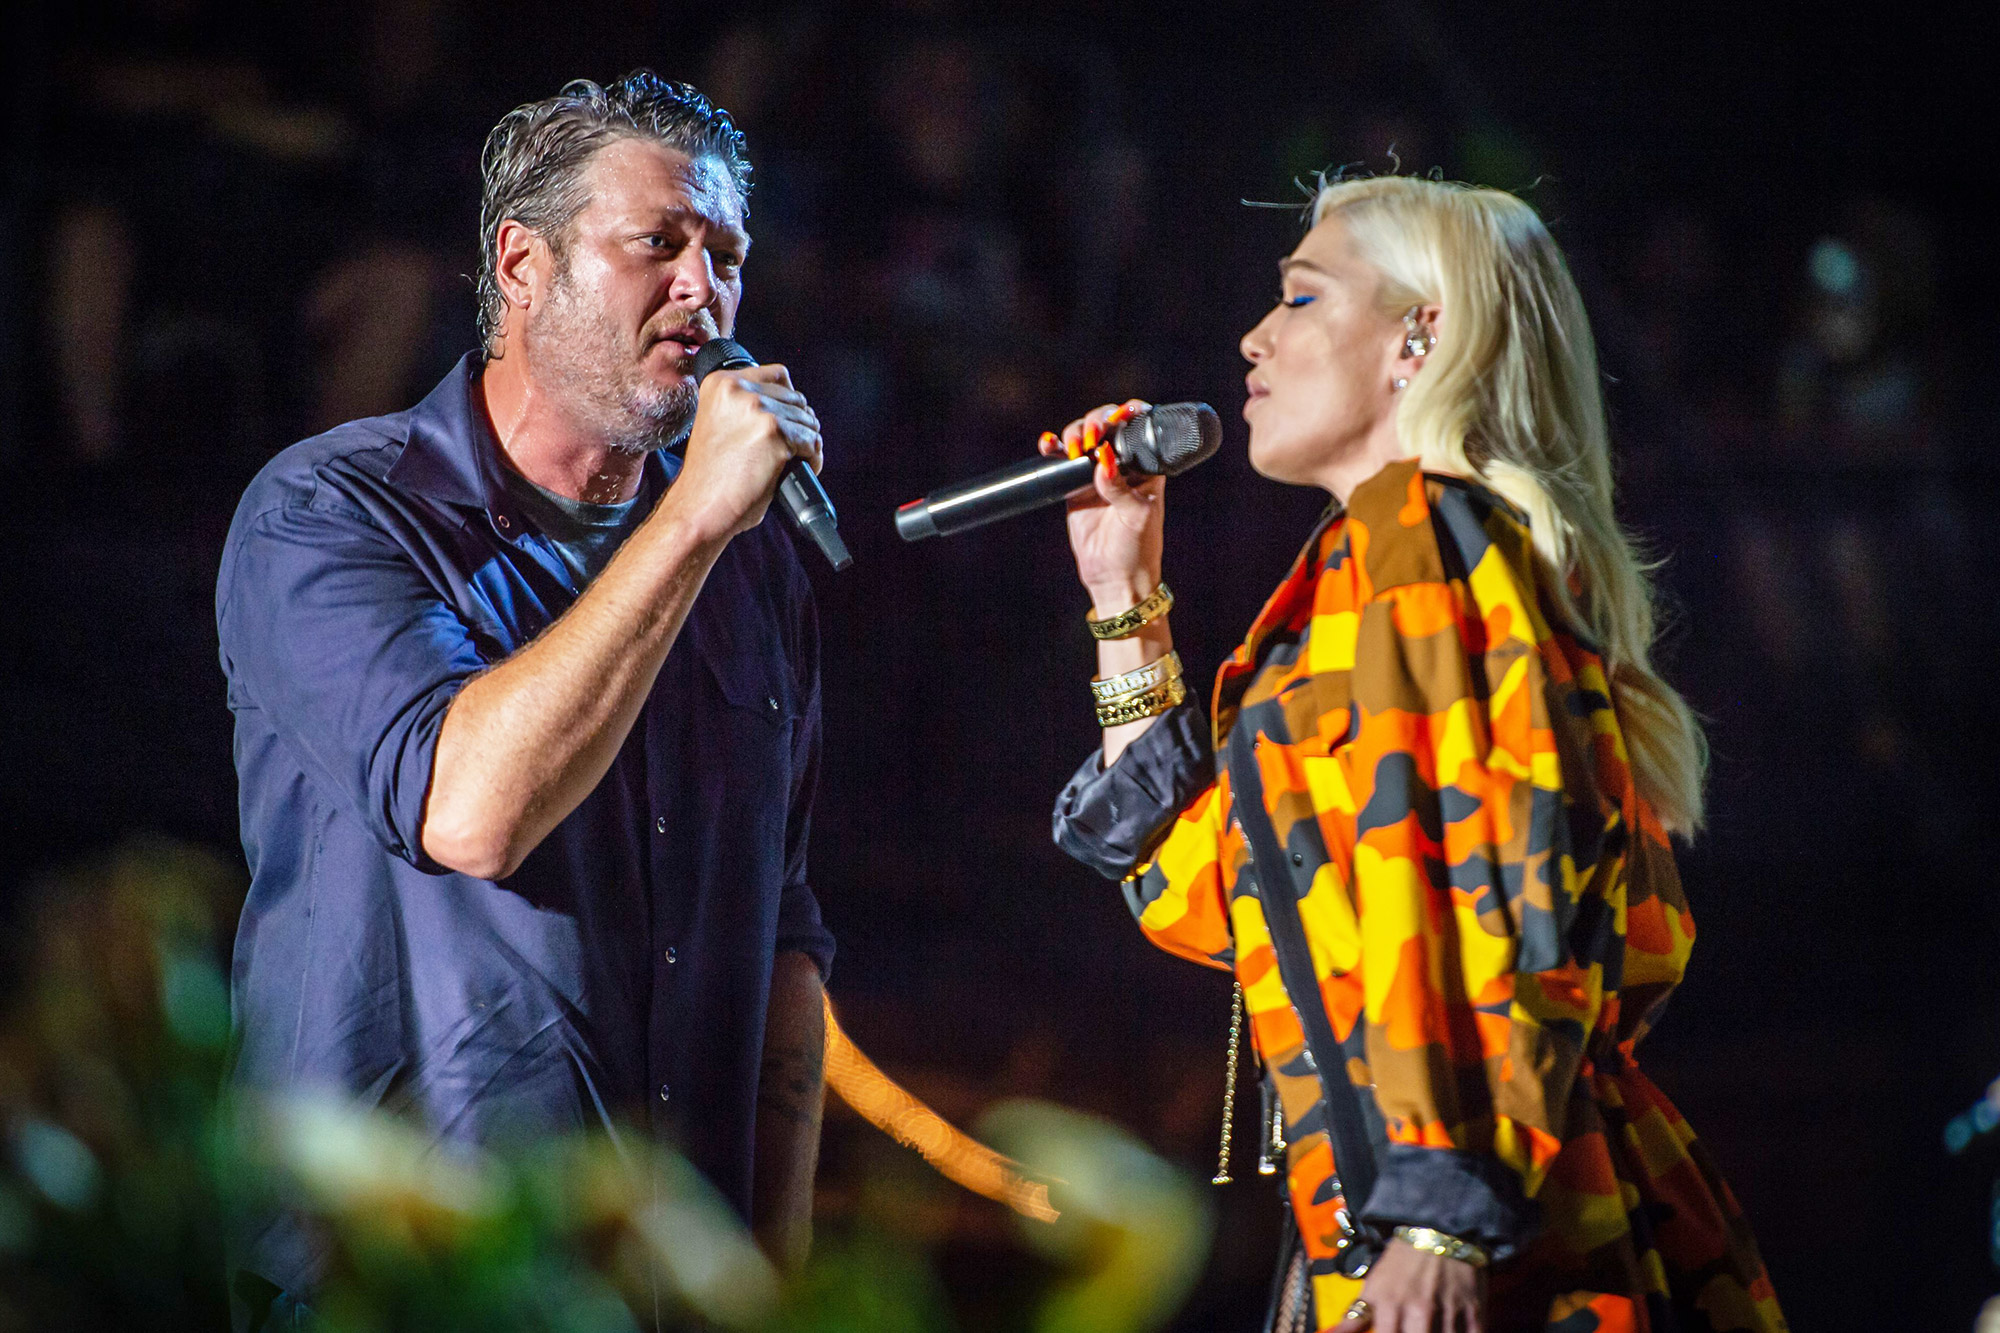 Blake Shelton and Gwen Stefani perform at the Country Thunder Music Festival, Twin Lakes, Wisconsin, USA - 18 Jul 2021